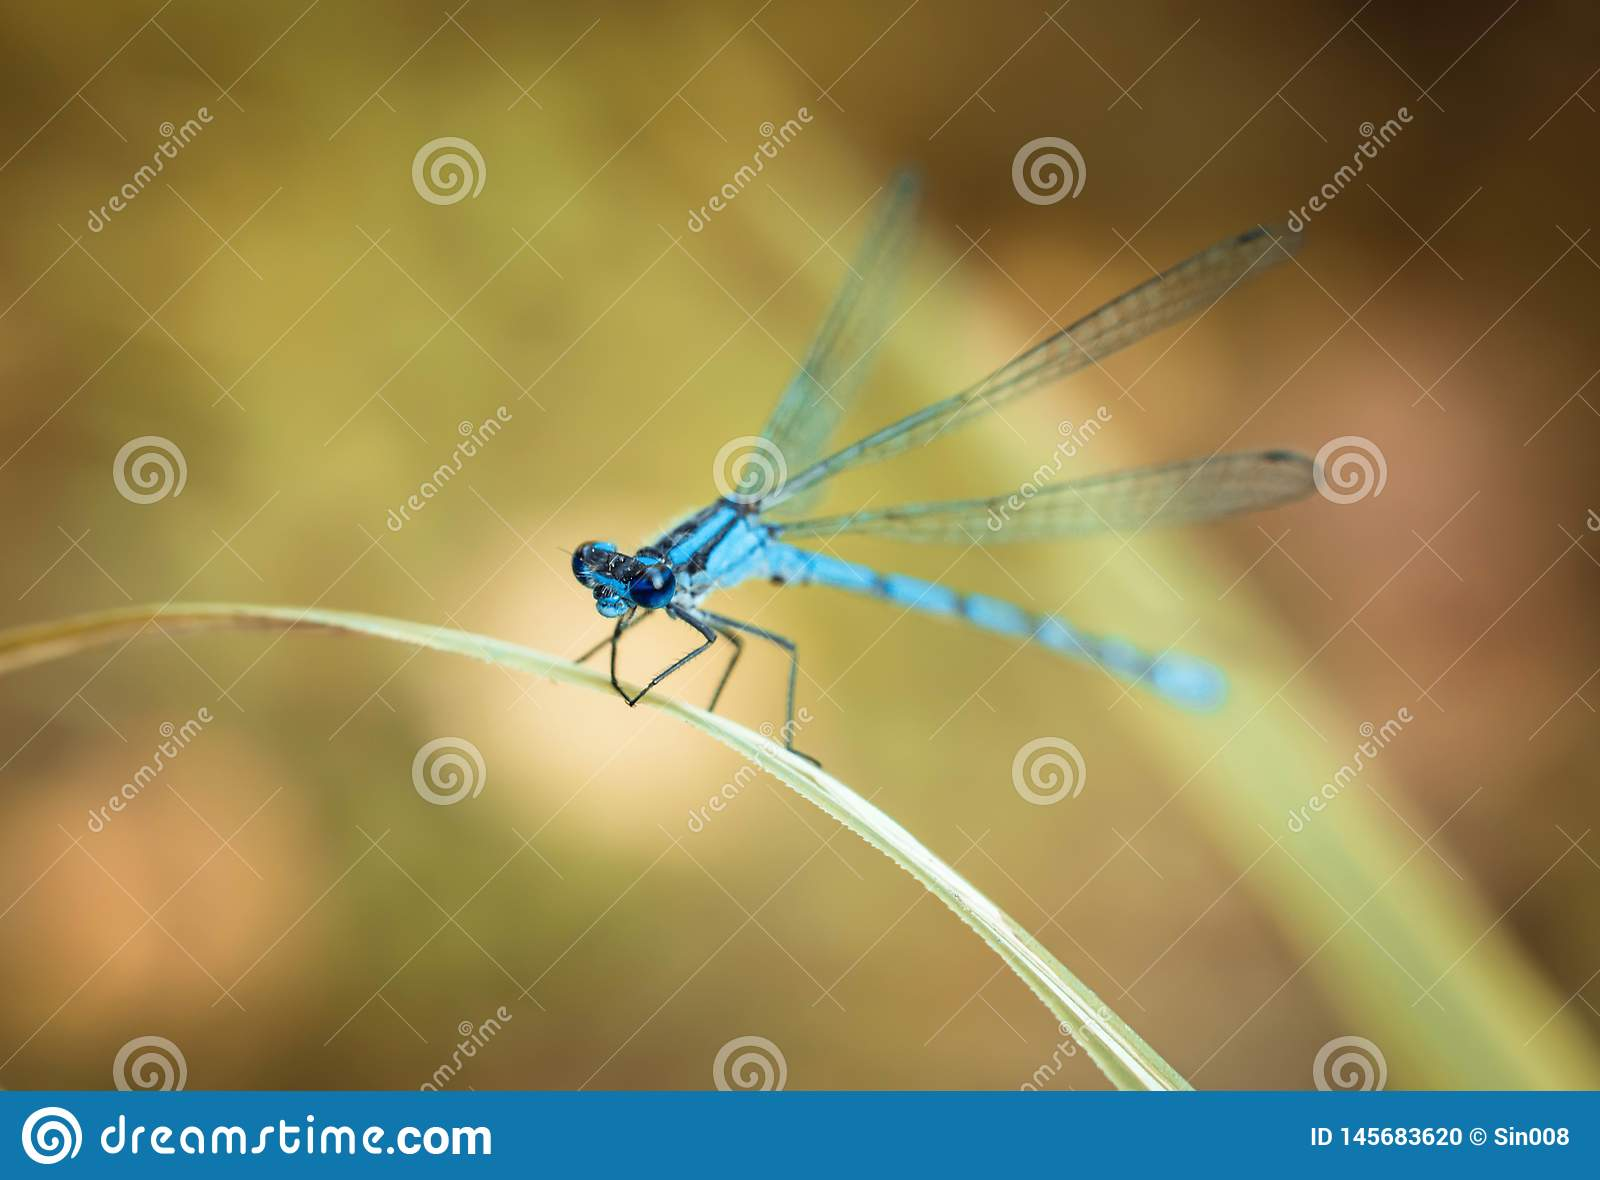 Blue dragonfly on a yellow background. Dragonfly sitting on a dry blade of grass. Textured wings. Bright summer day.